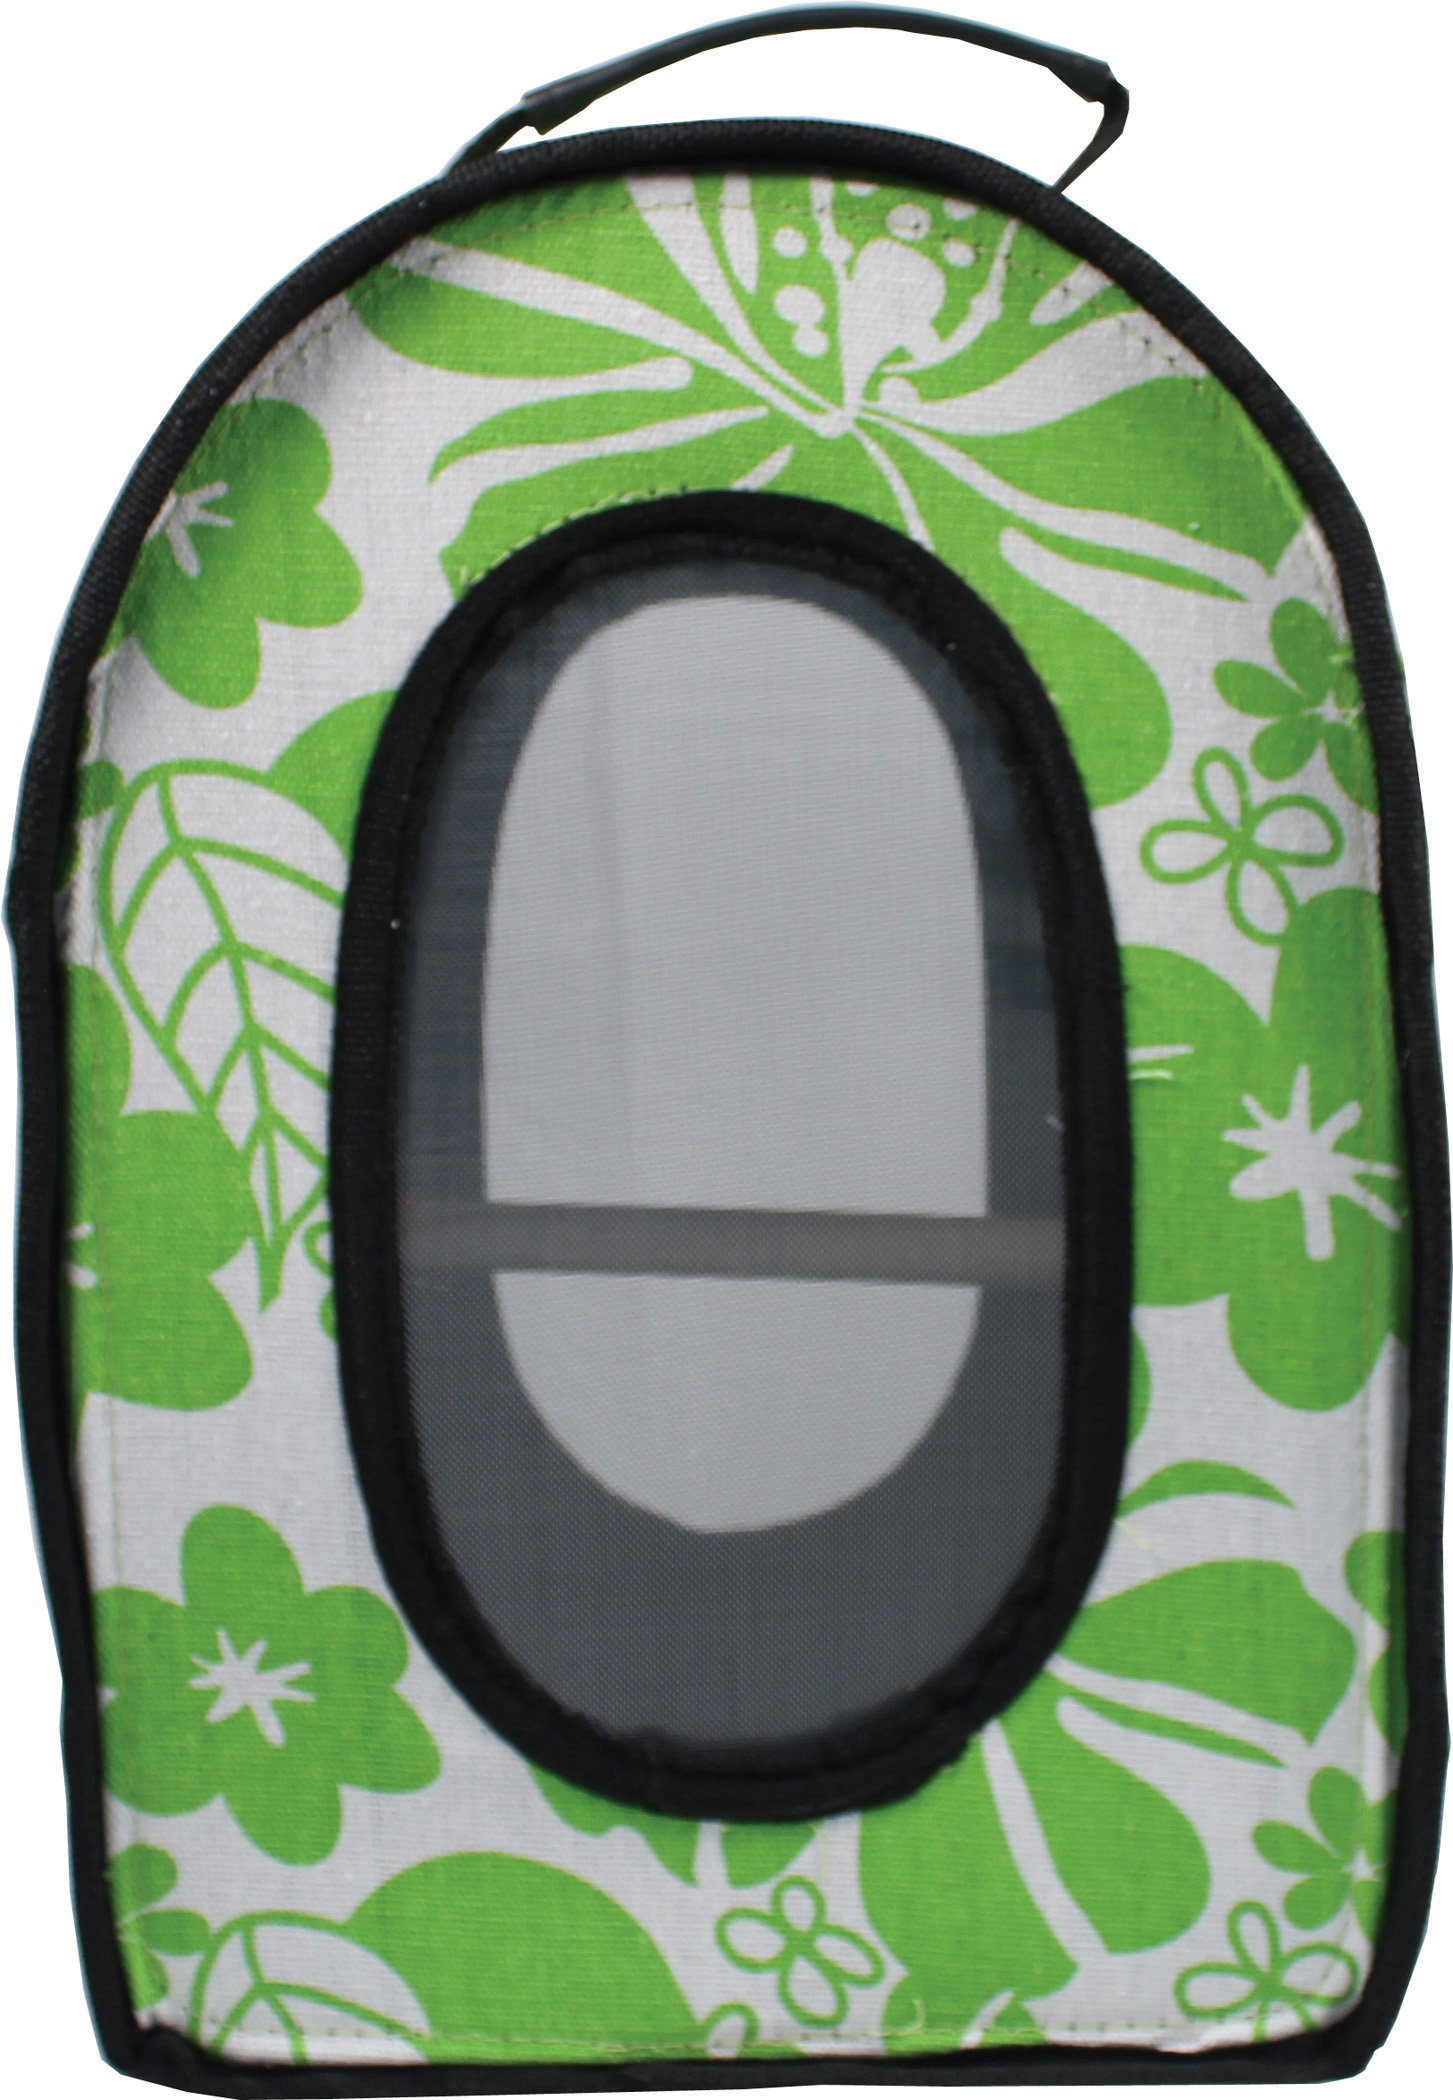 A&E CAGE COMPANY 001377 Happy Beaks Soft Sided Travel Bird Carrier Green, 14.5X10.5X7 in by A&E CAGE COMPANY